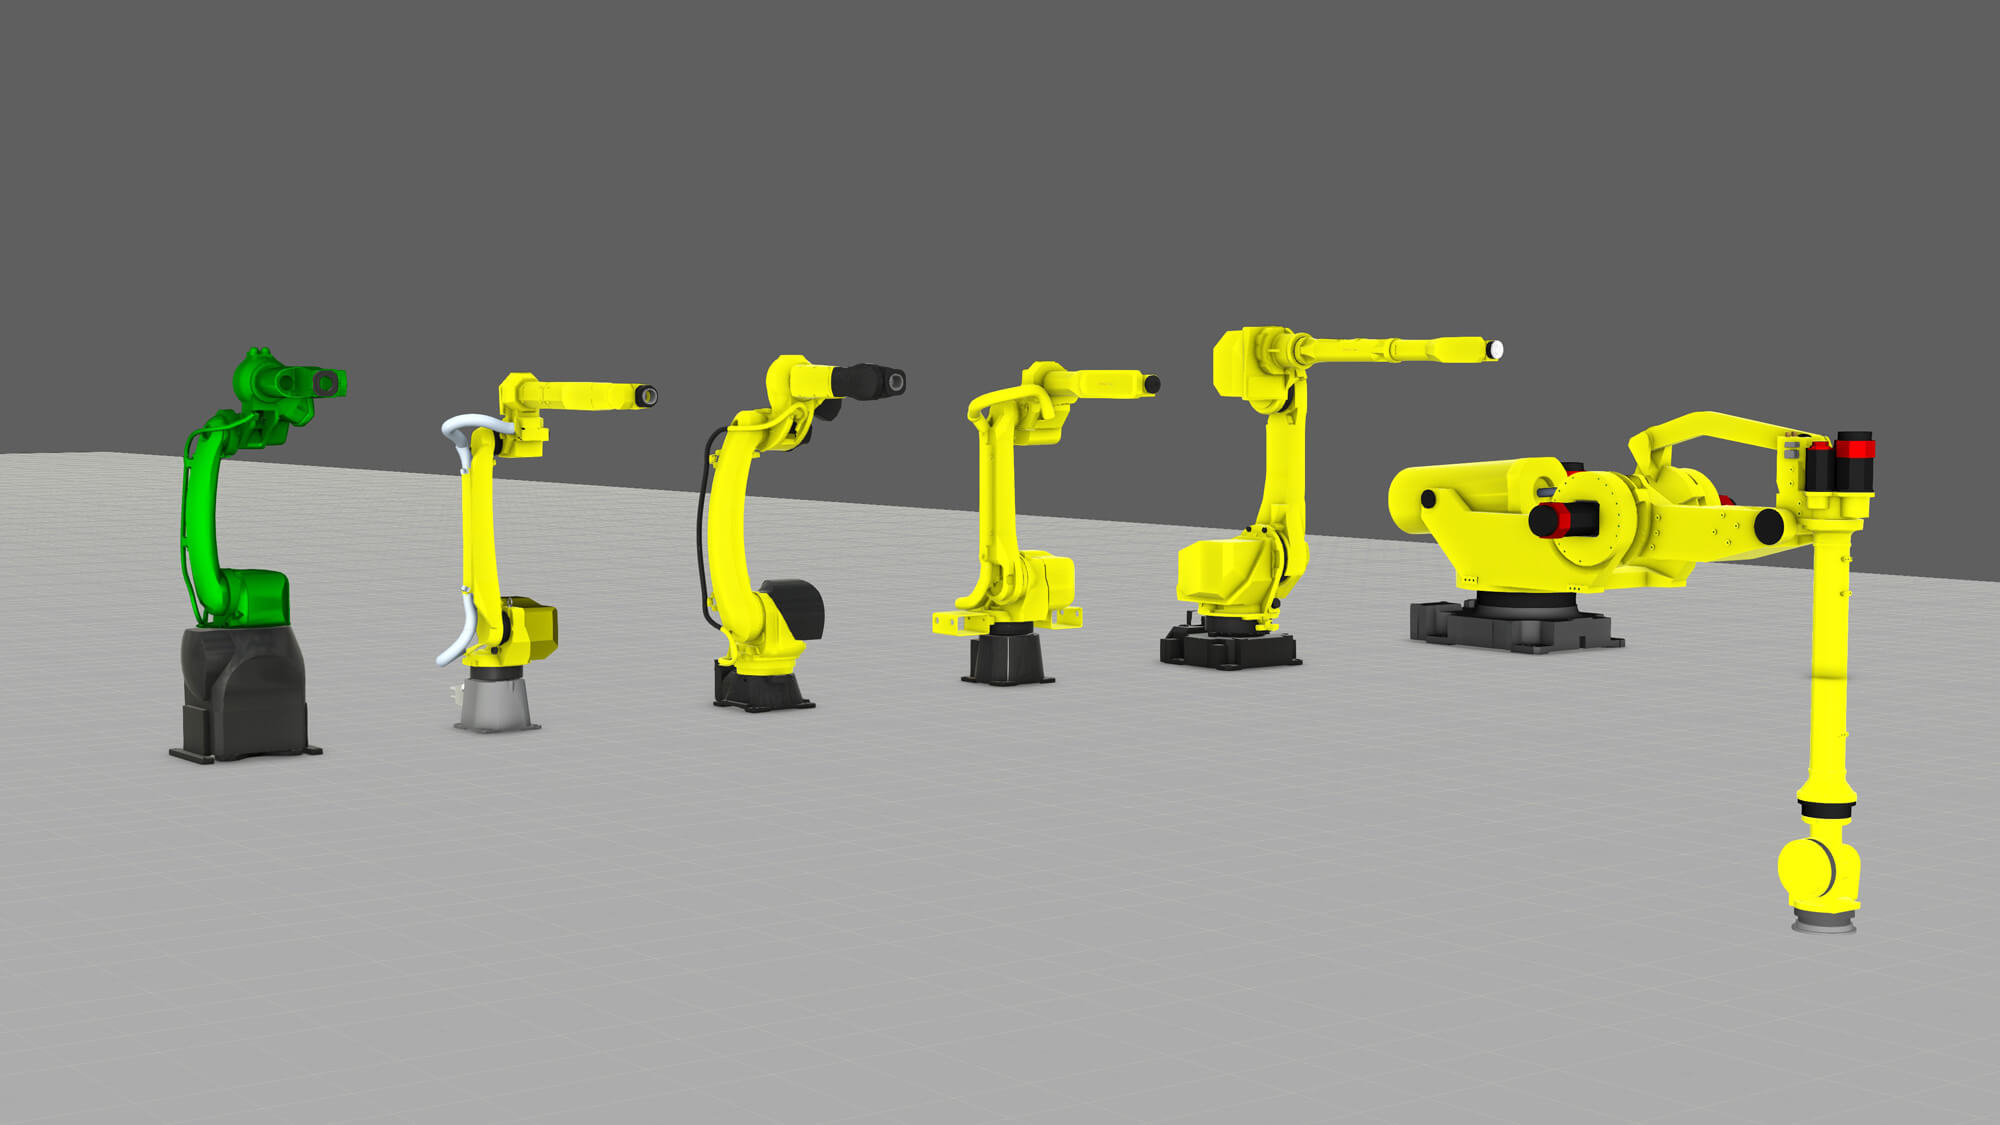 The new Fanuc component additions to Visual Components eCatalog in August 2019